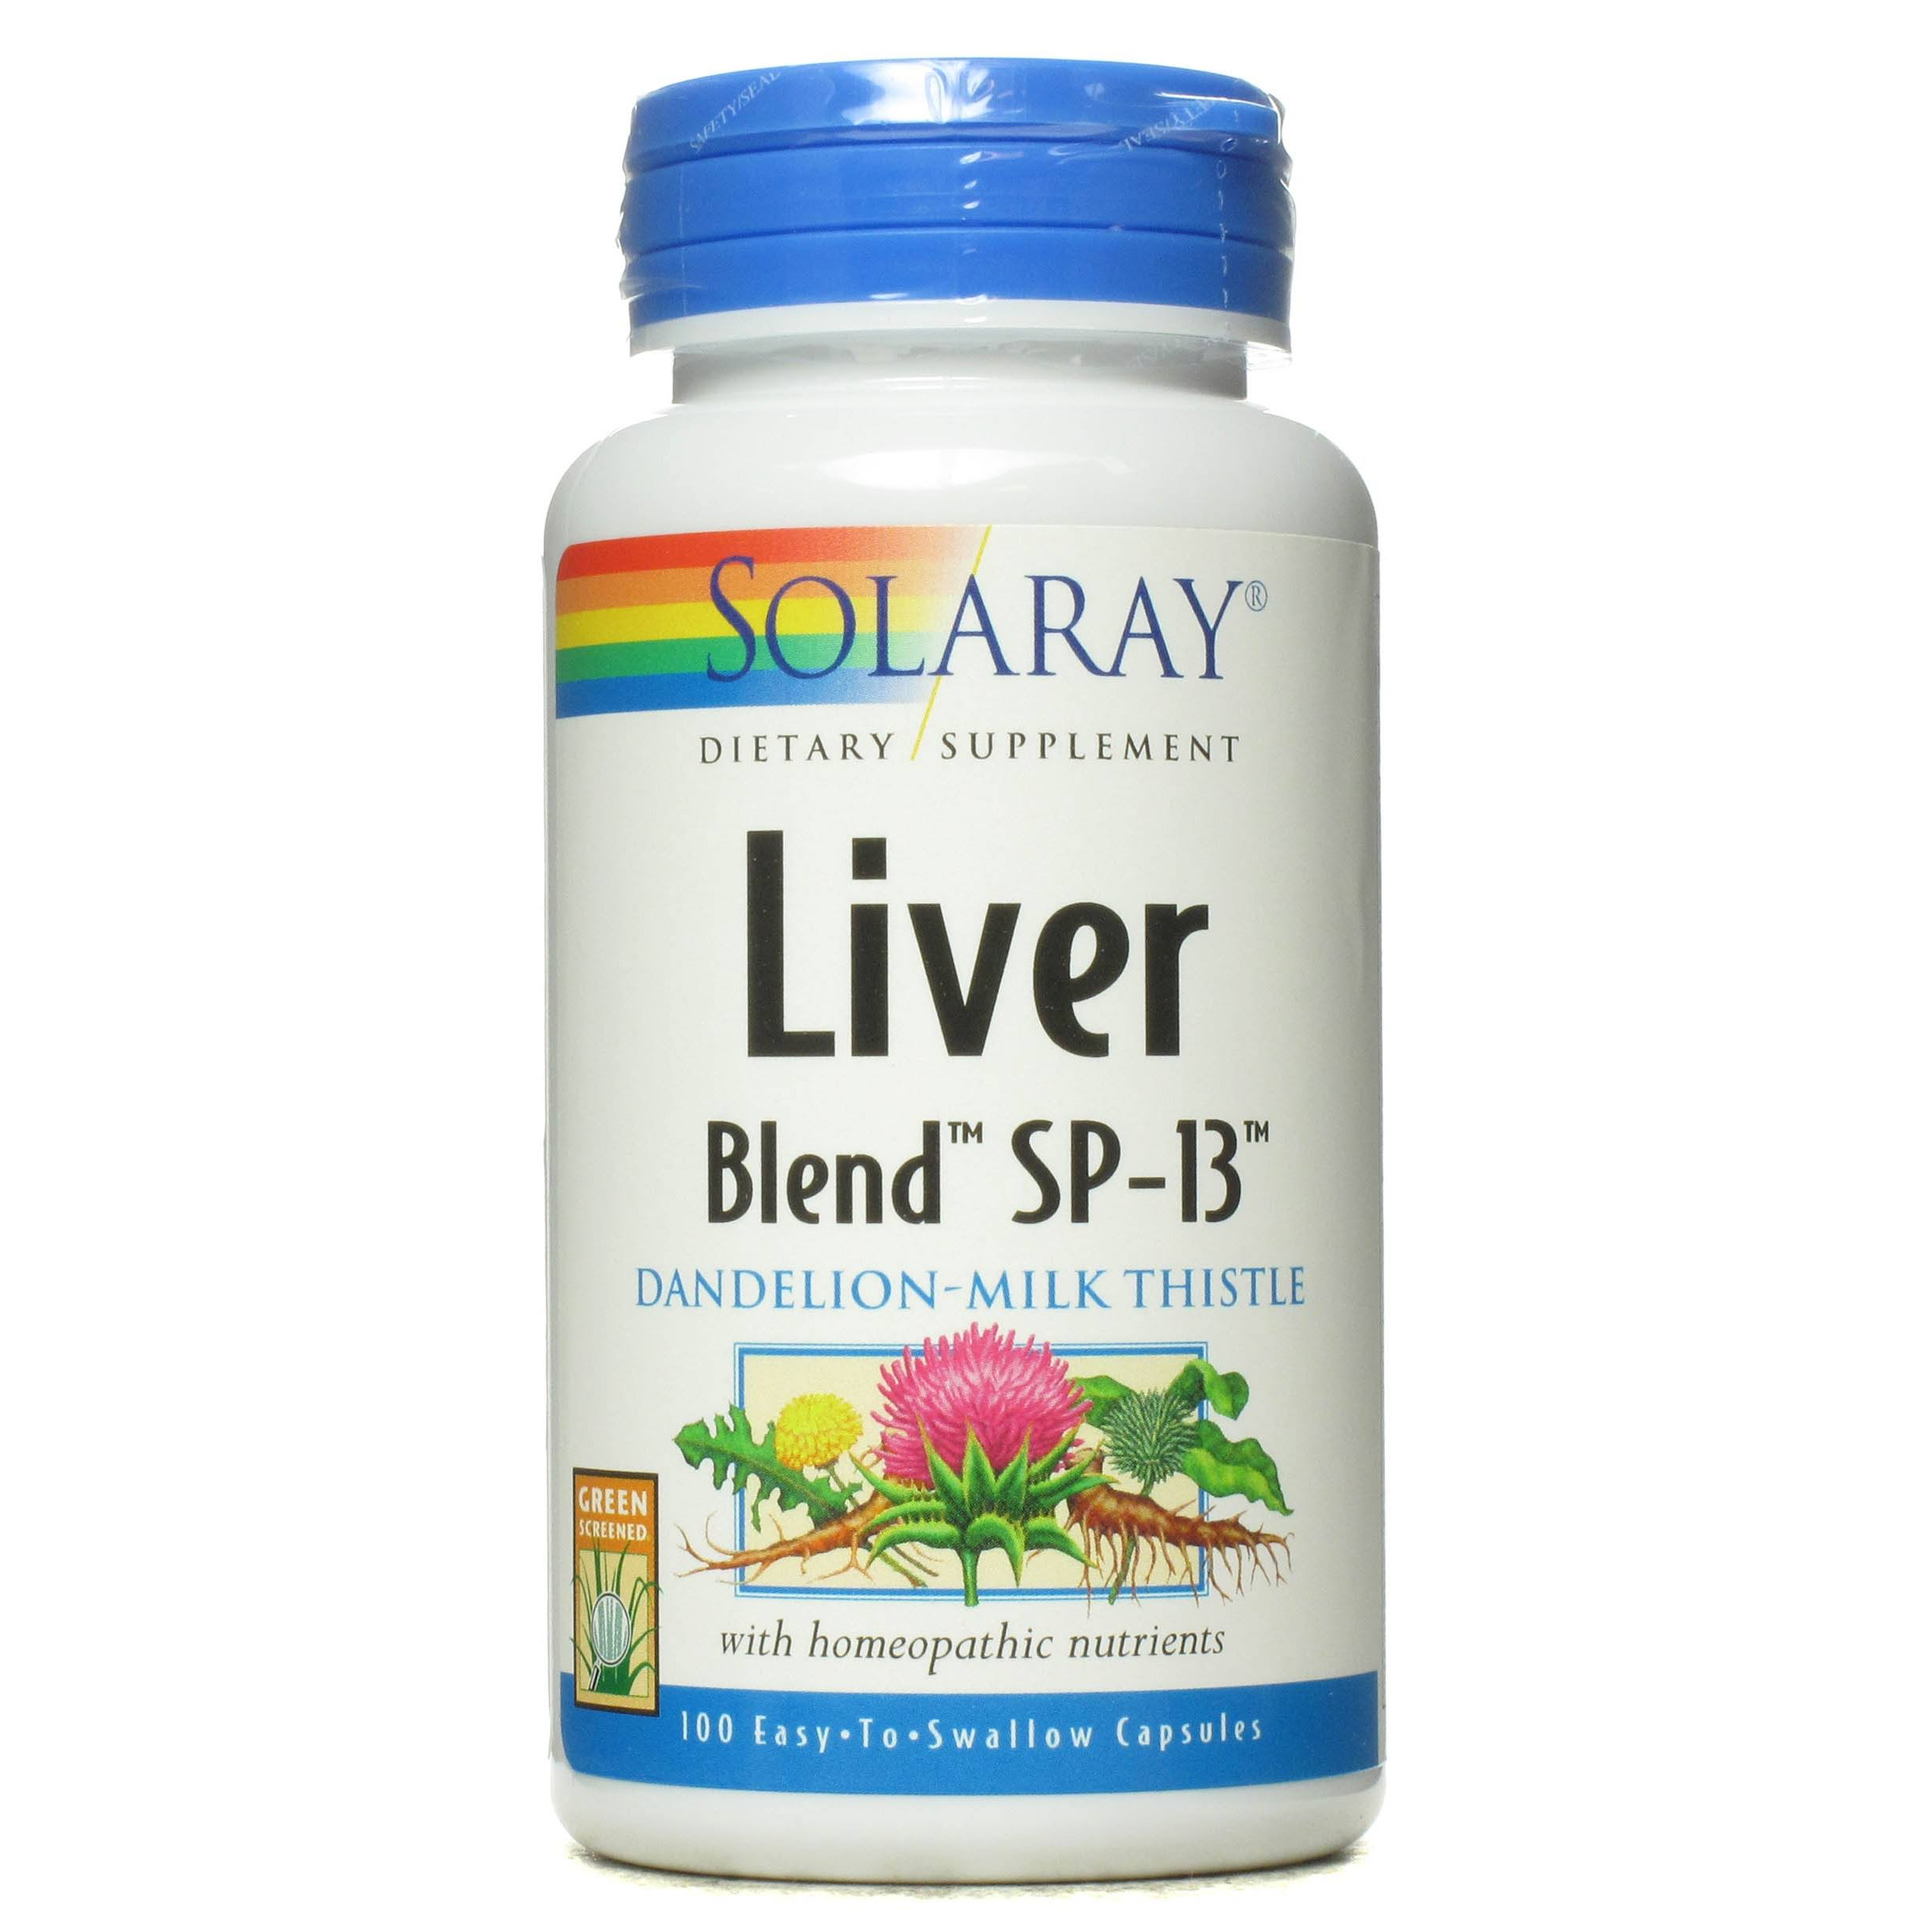 Solaray Liver Blend Sp 13 Dietary Supplement Capsules - 100ct